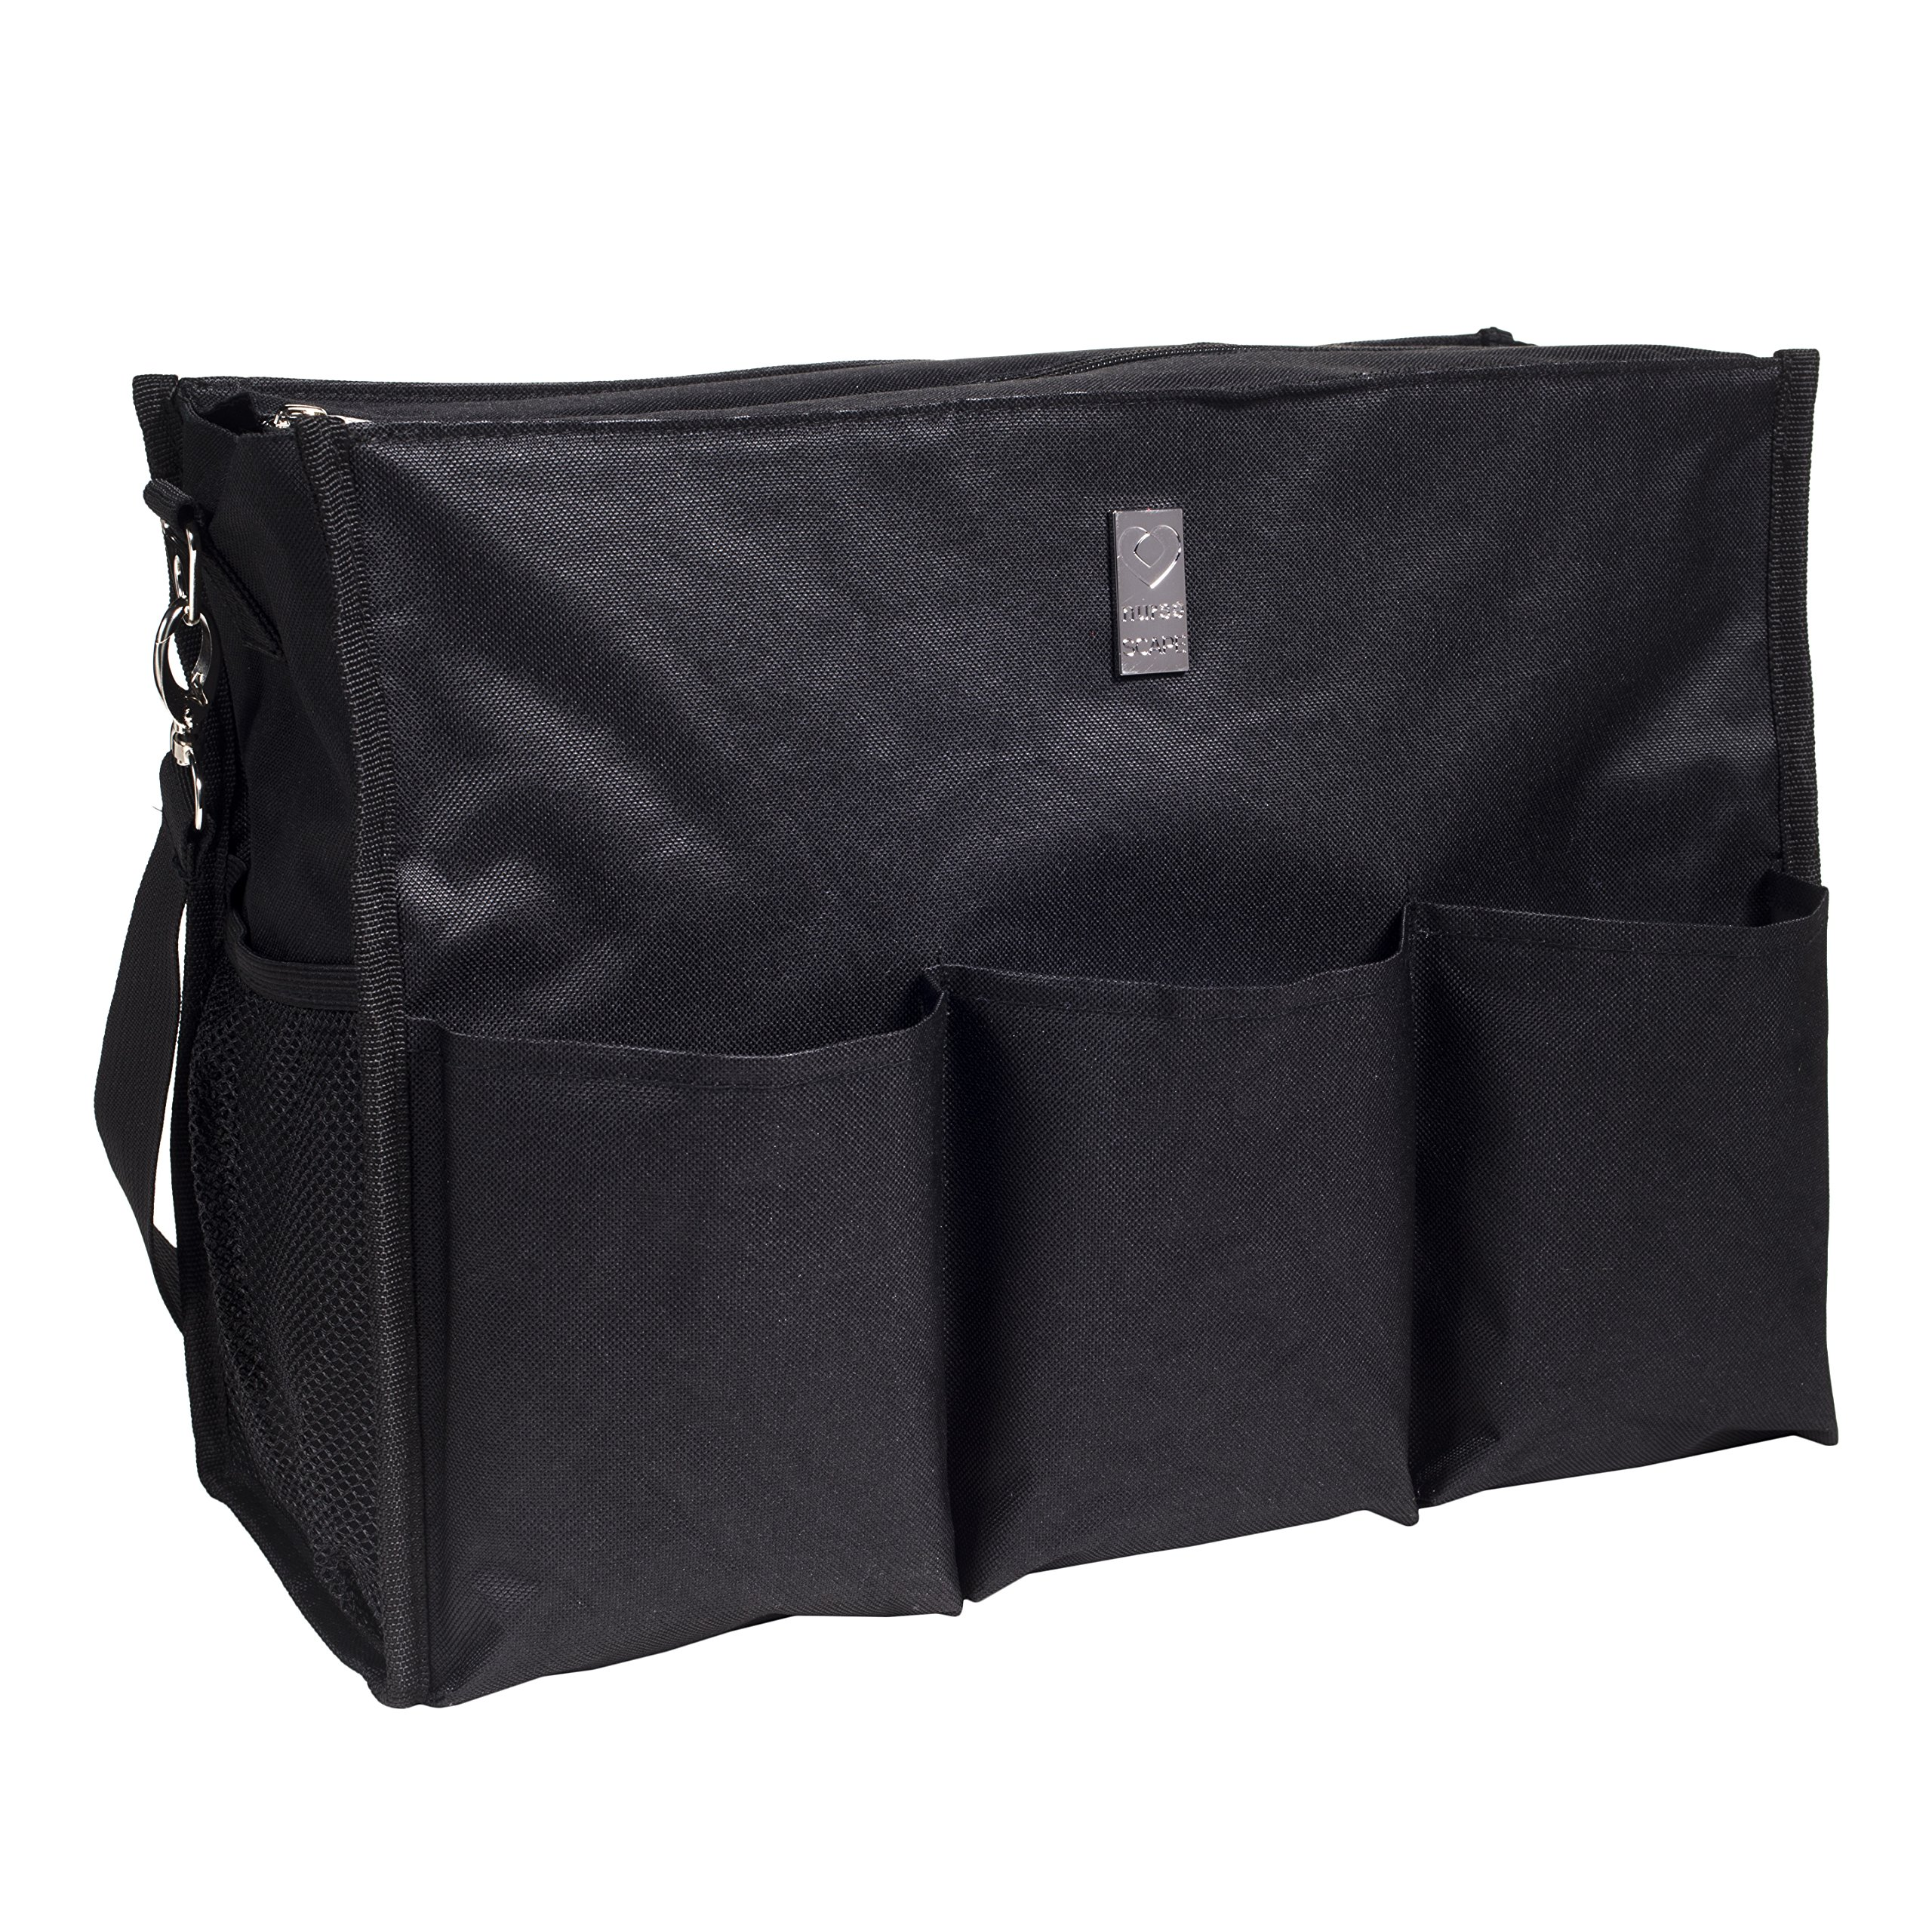 Wheelchair Bag for Back of Chair w/ 5 Exterior & 5 Interior Pockets - Perfect Carrier Bag for Newspaper, Medical Paperwork, Blanket & More for Most Electric, Manual or Power Wheelchairs (Black)